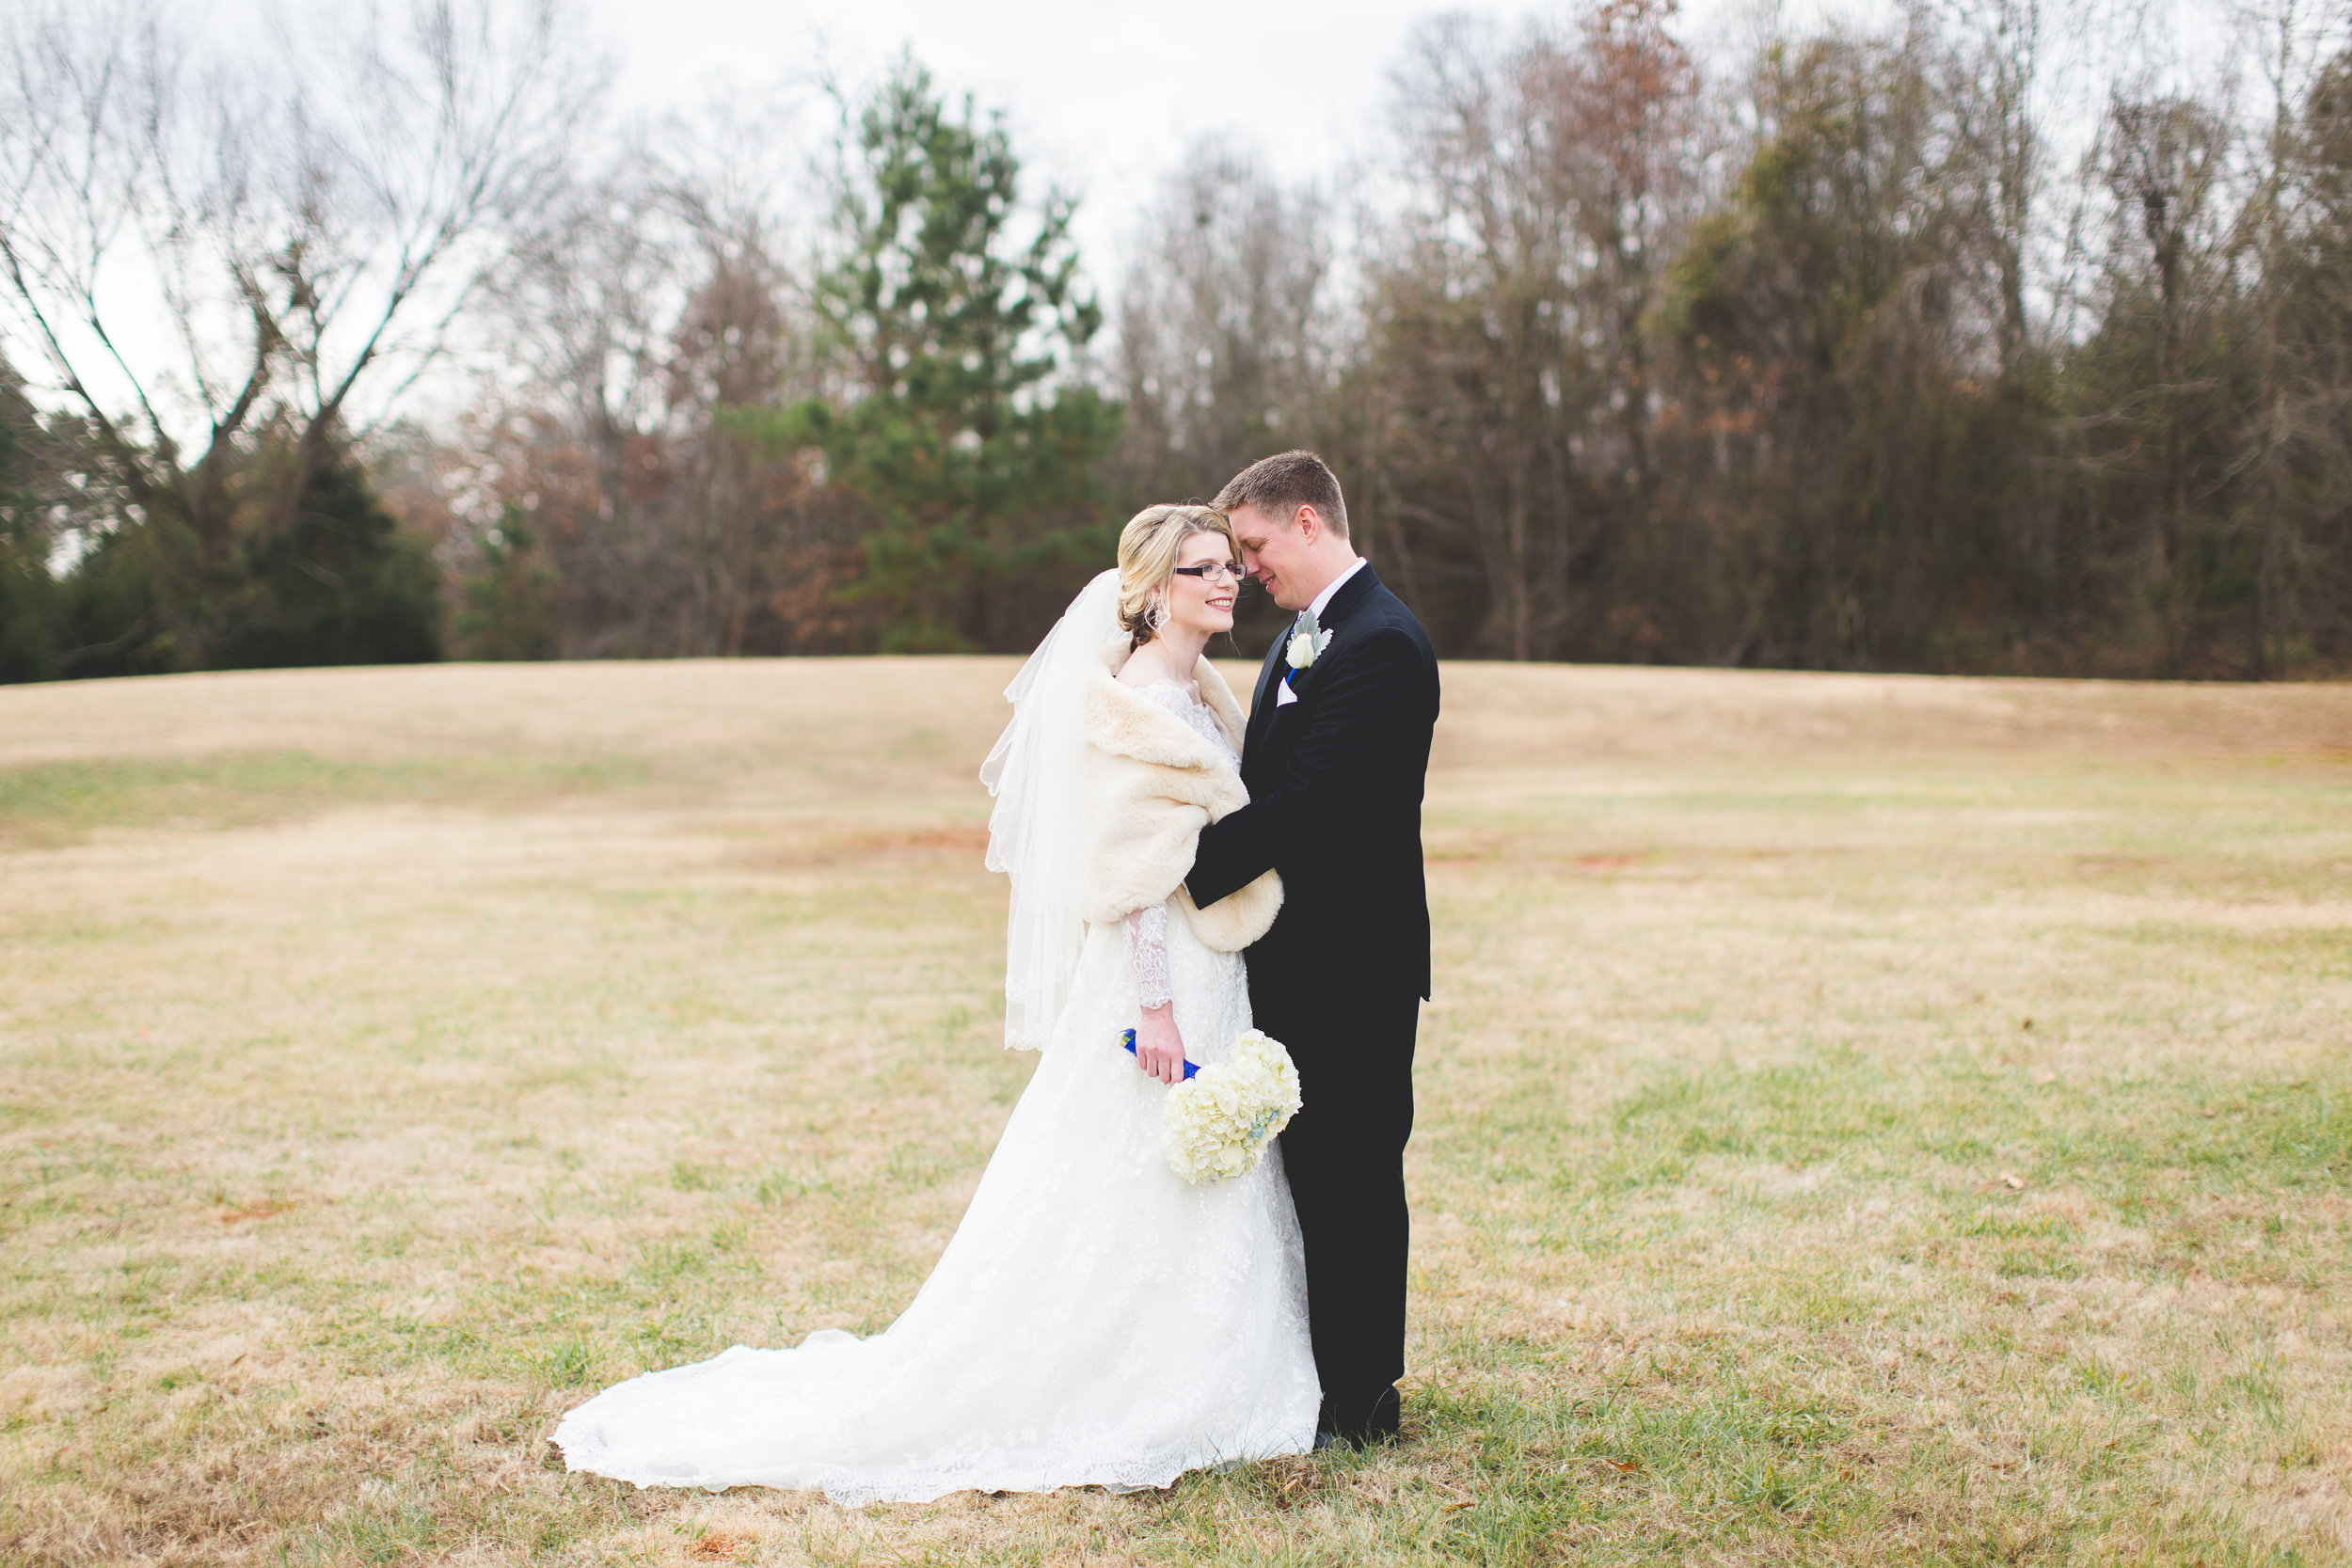 Winter Christmas Bride and Groom Portraits